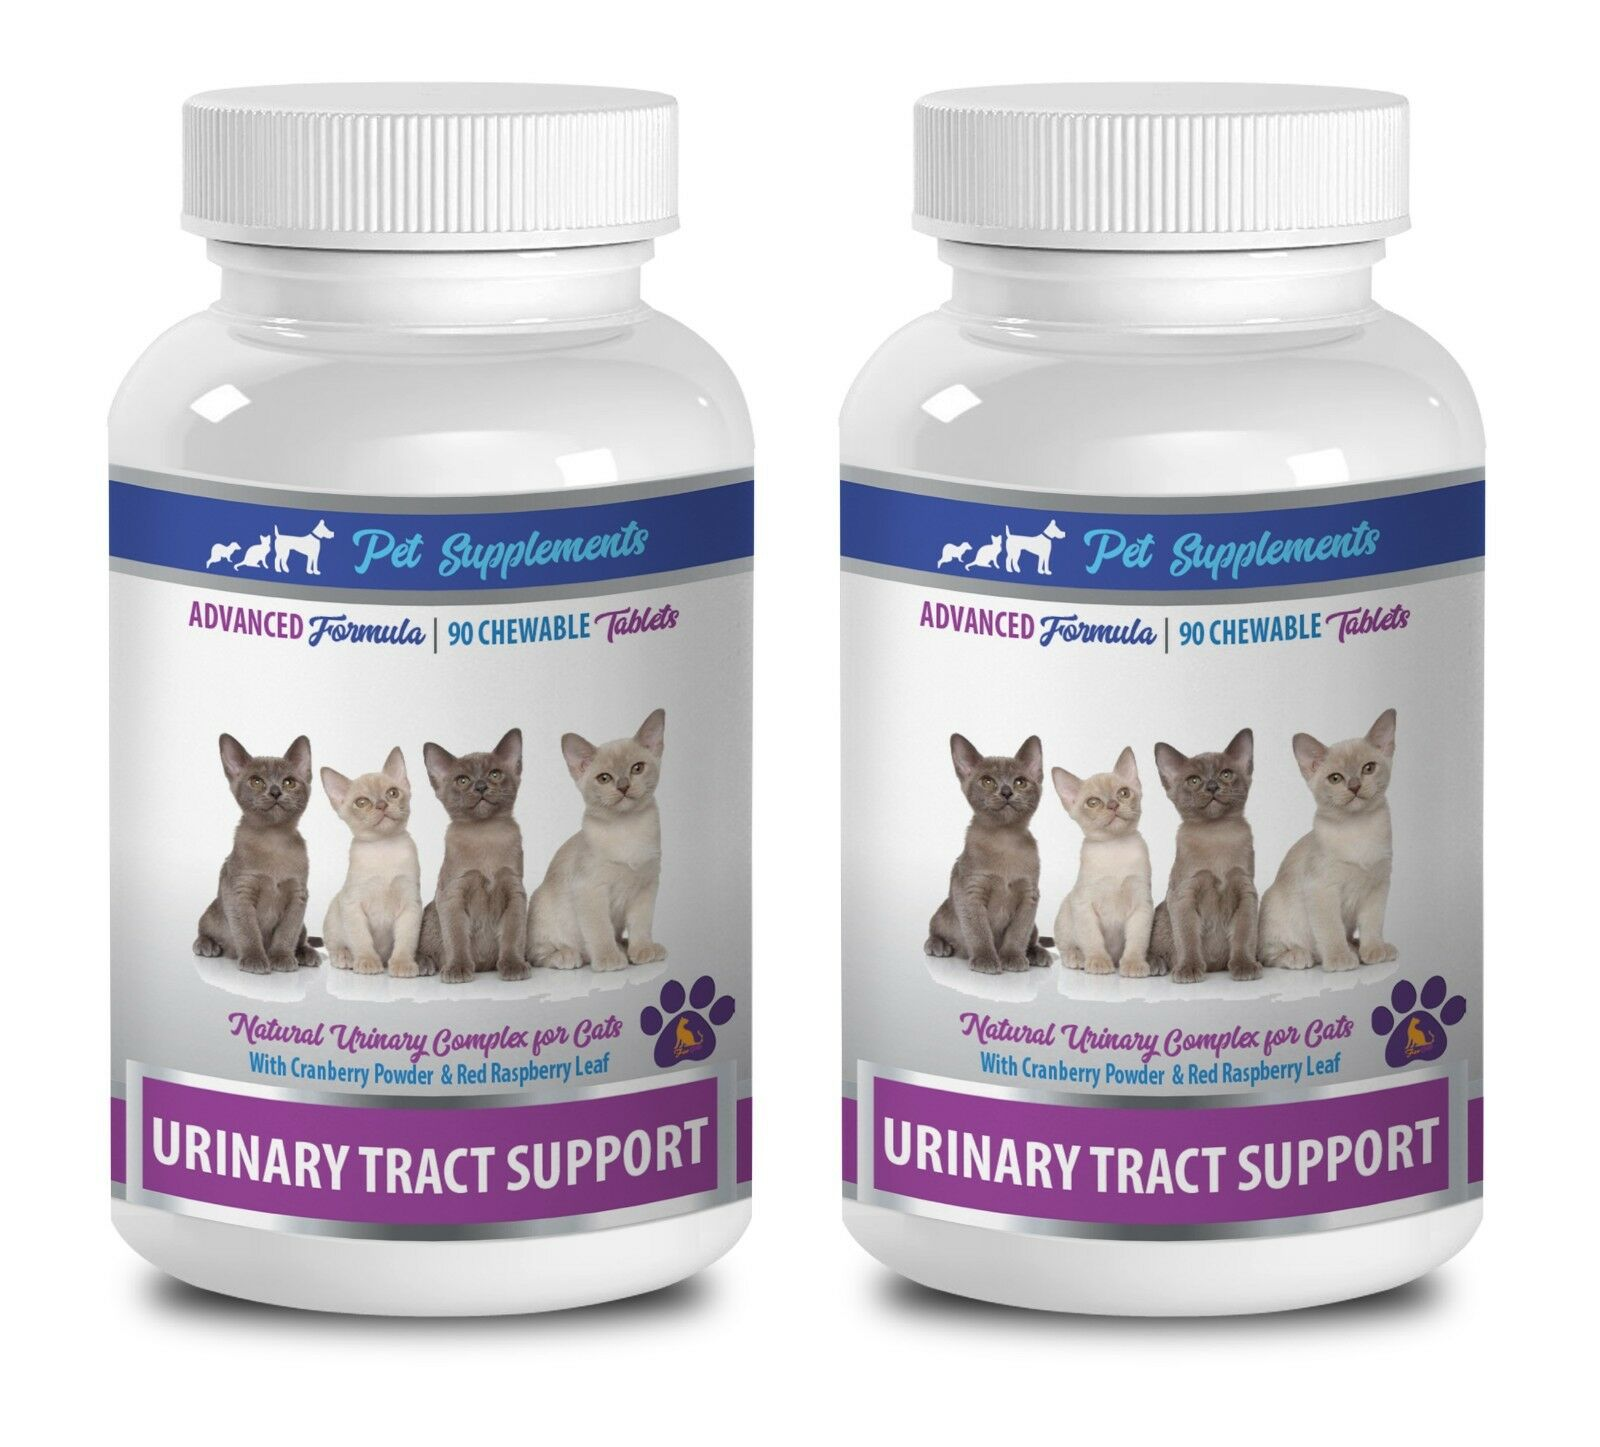 Urinary tract cat supplement - CAT URINARY TRACT SUPPORT 2B- urinary cat treats